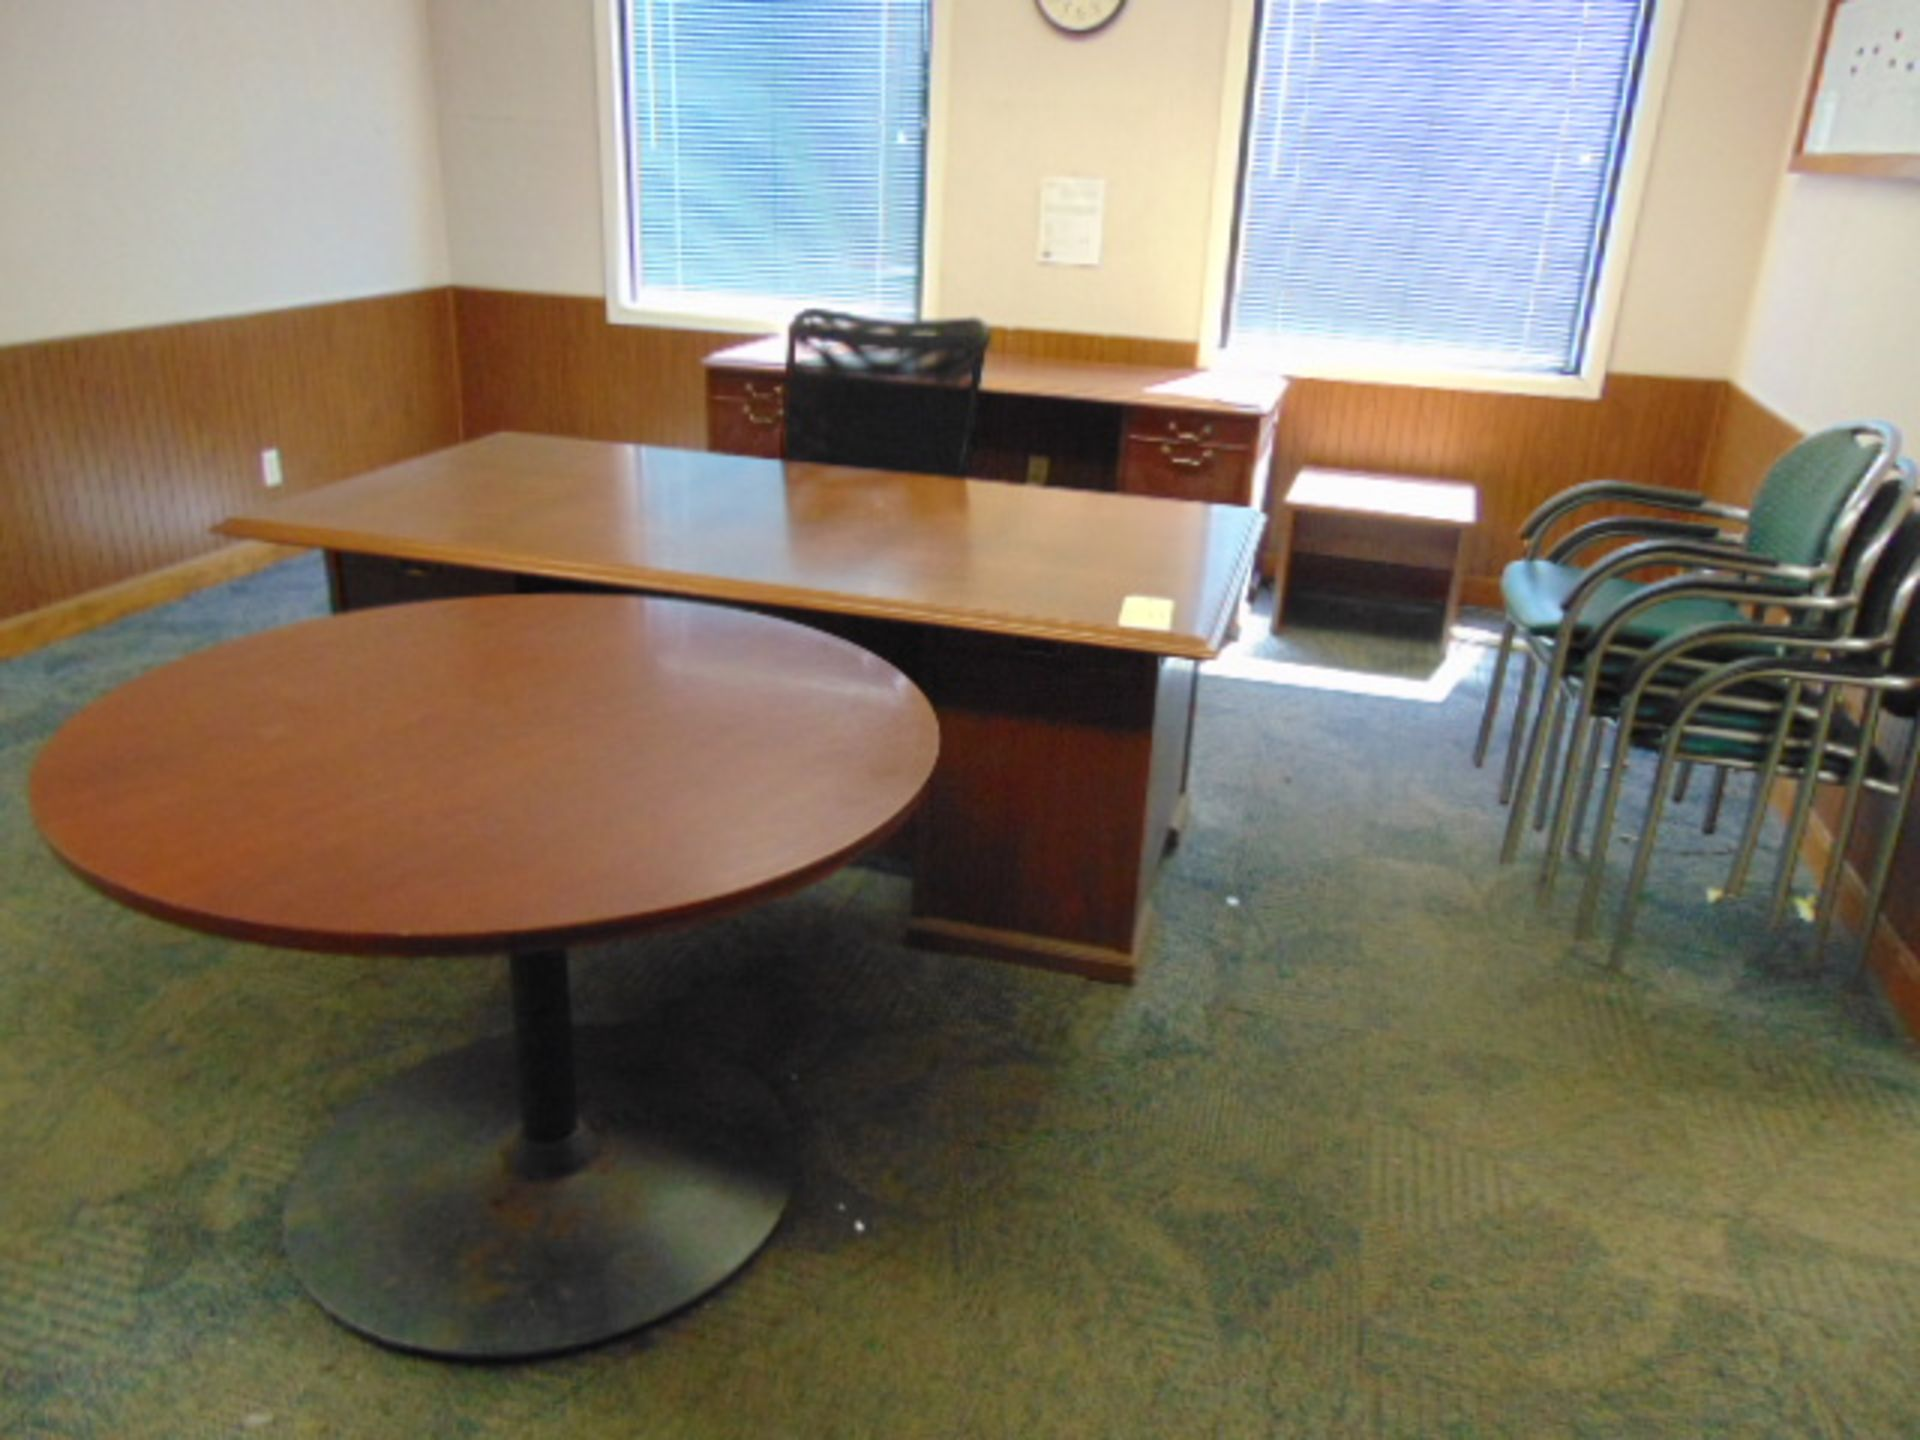 Lot 531 - LOT CONSISTING OF: wood desk, credenza, round table, lateral file cabinet & (9) chairs